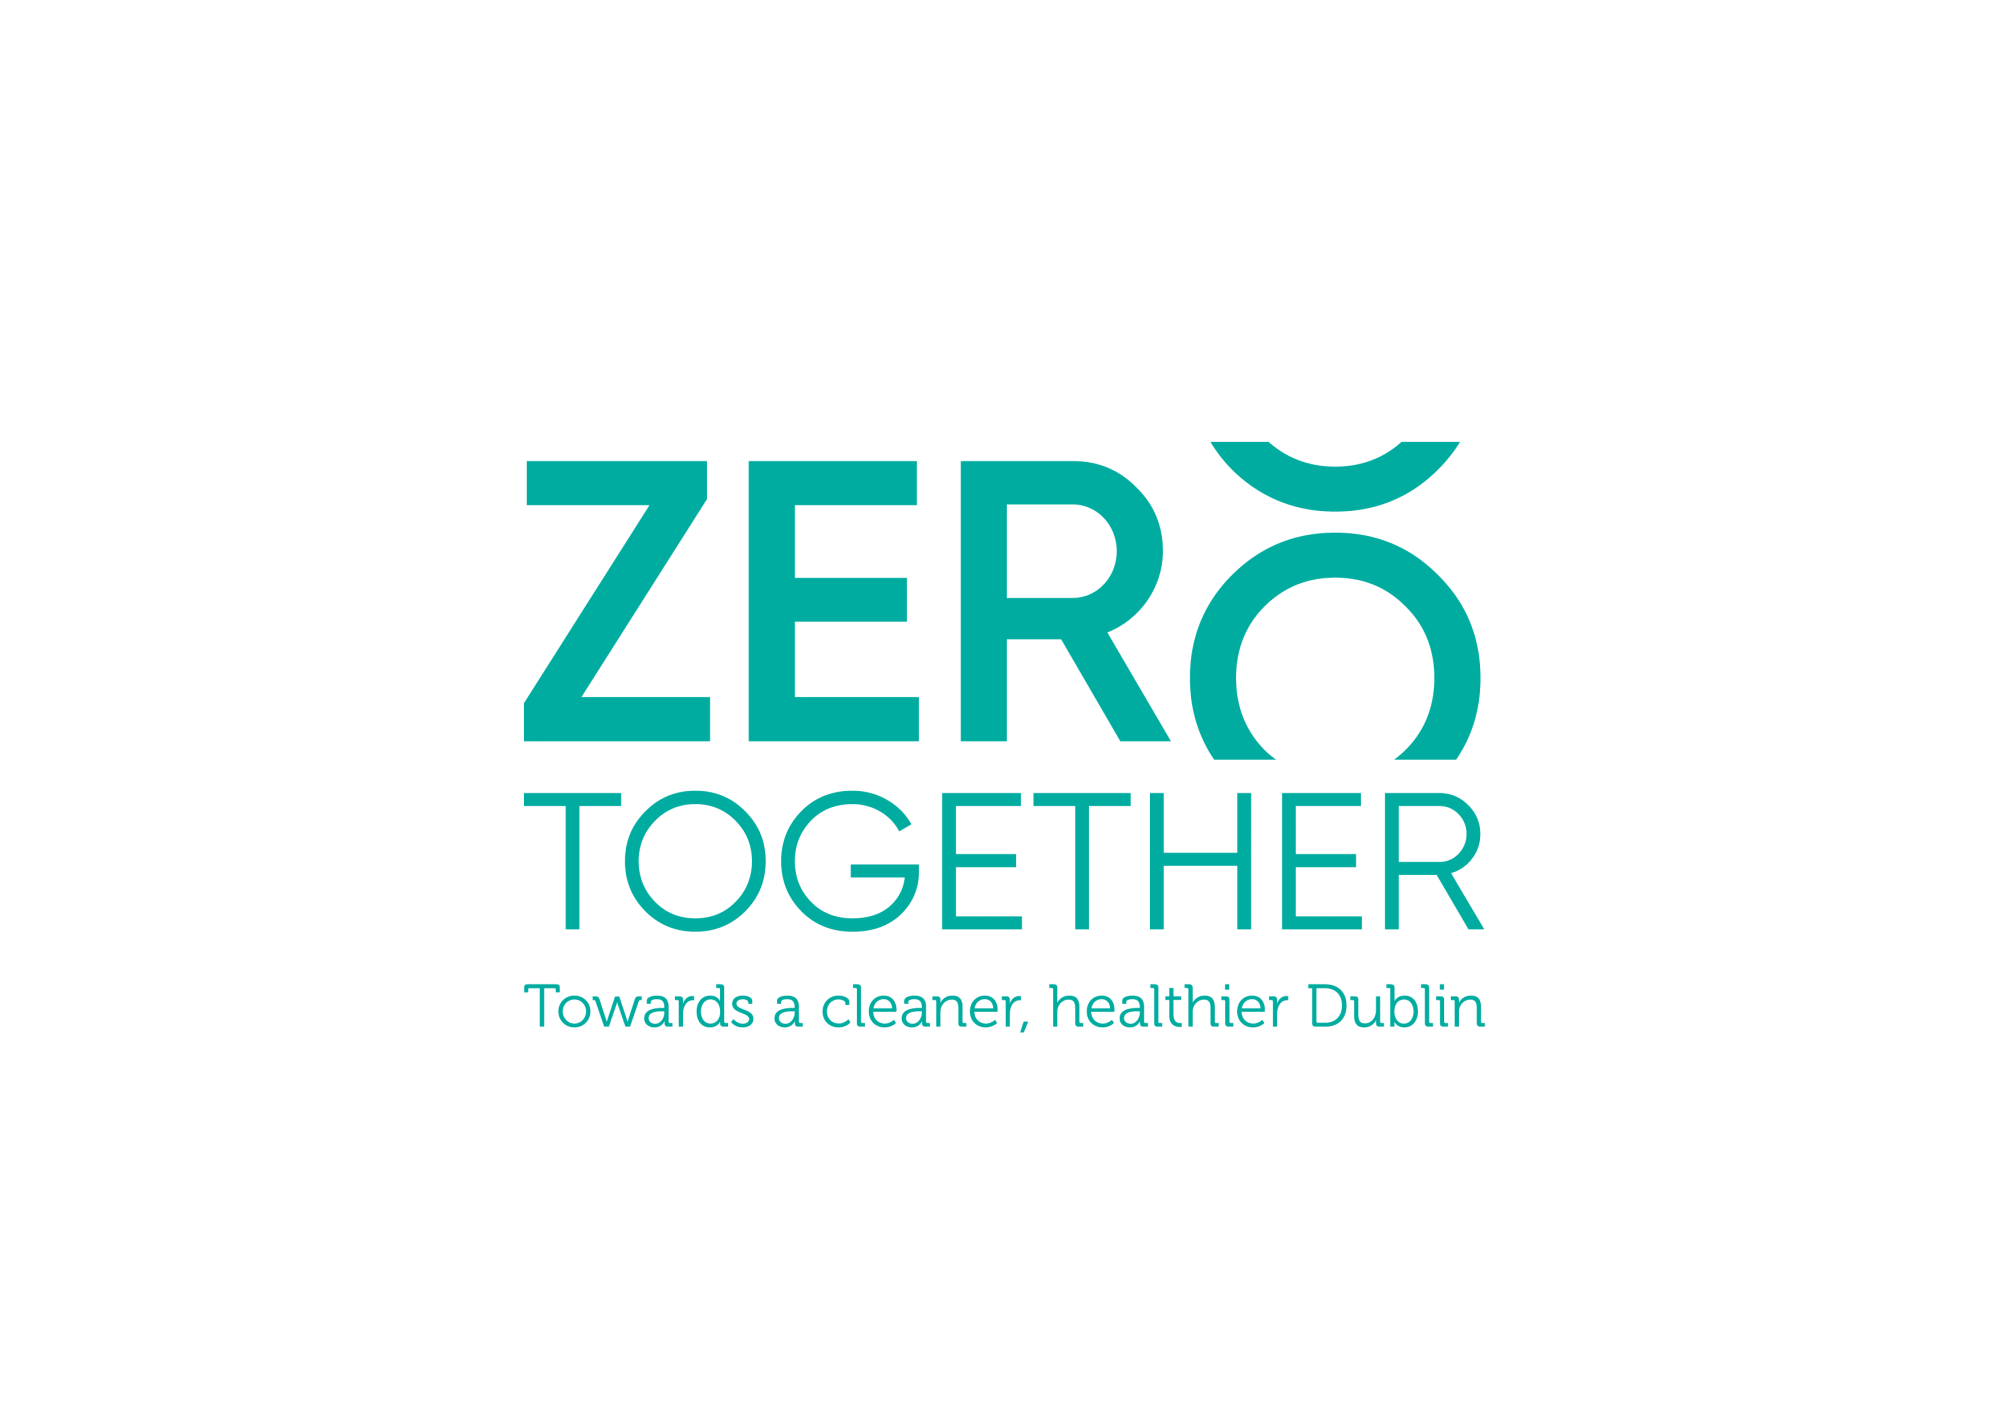 Zero Together - Towards a Cleaner, Healthier Dublin